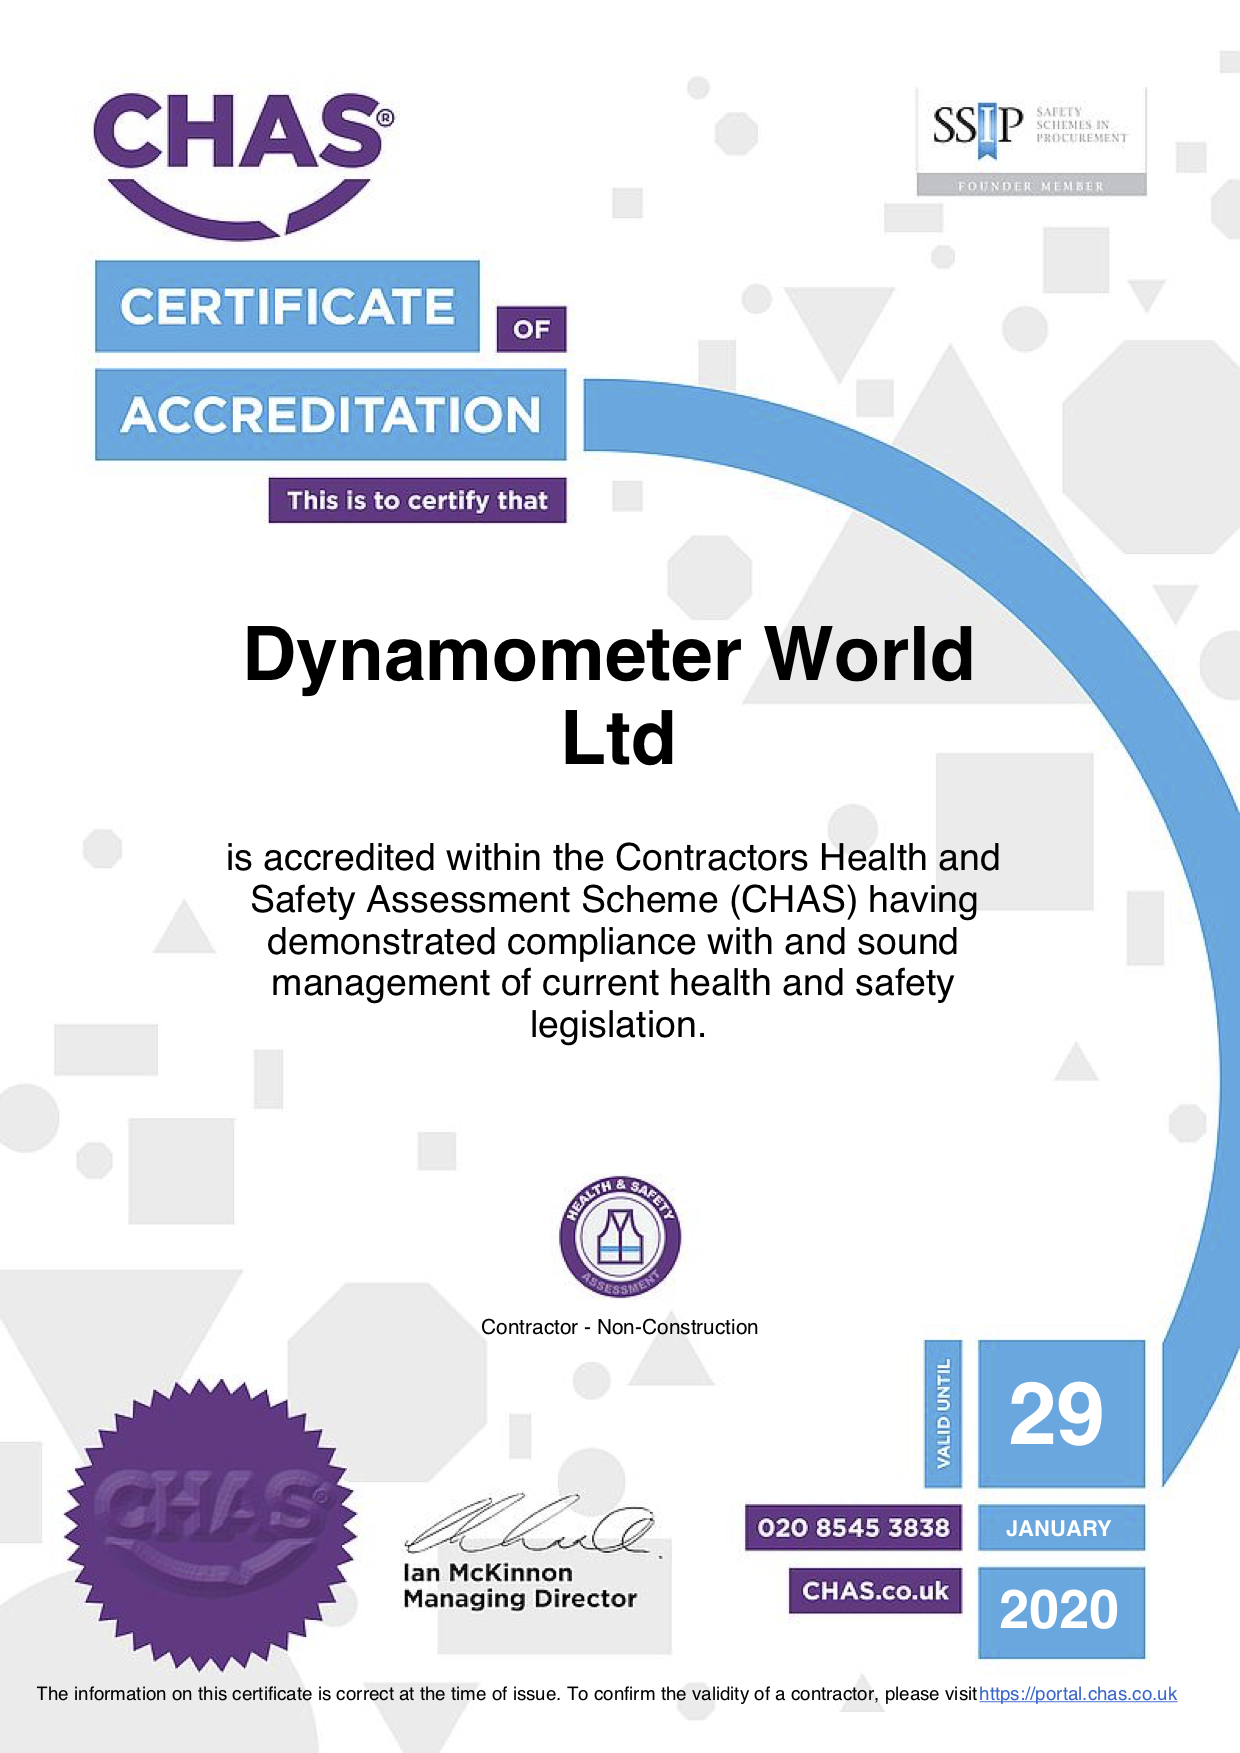 CHAS Certificate 2019 Dynamometer World Ltd